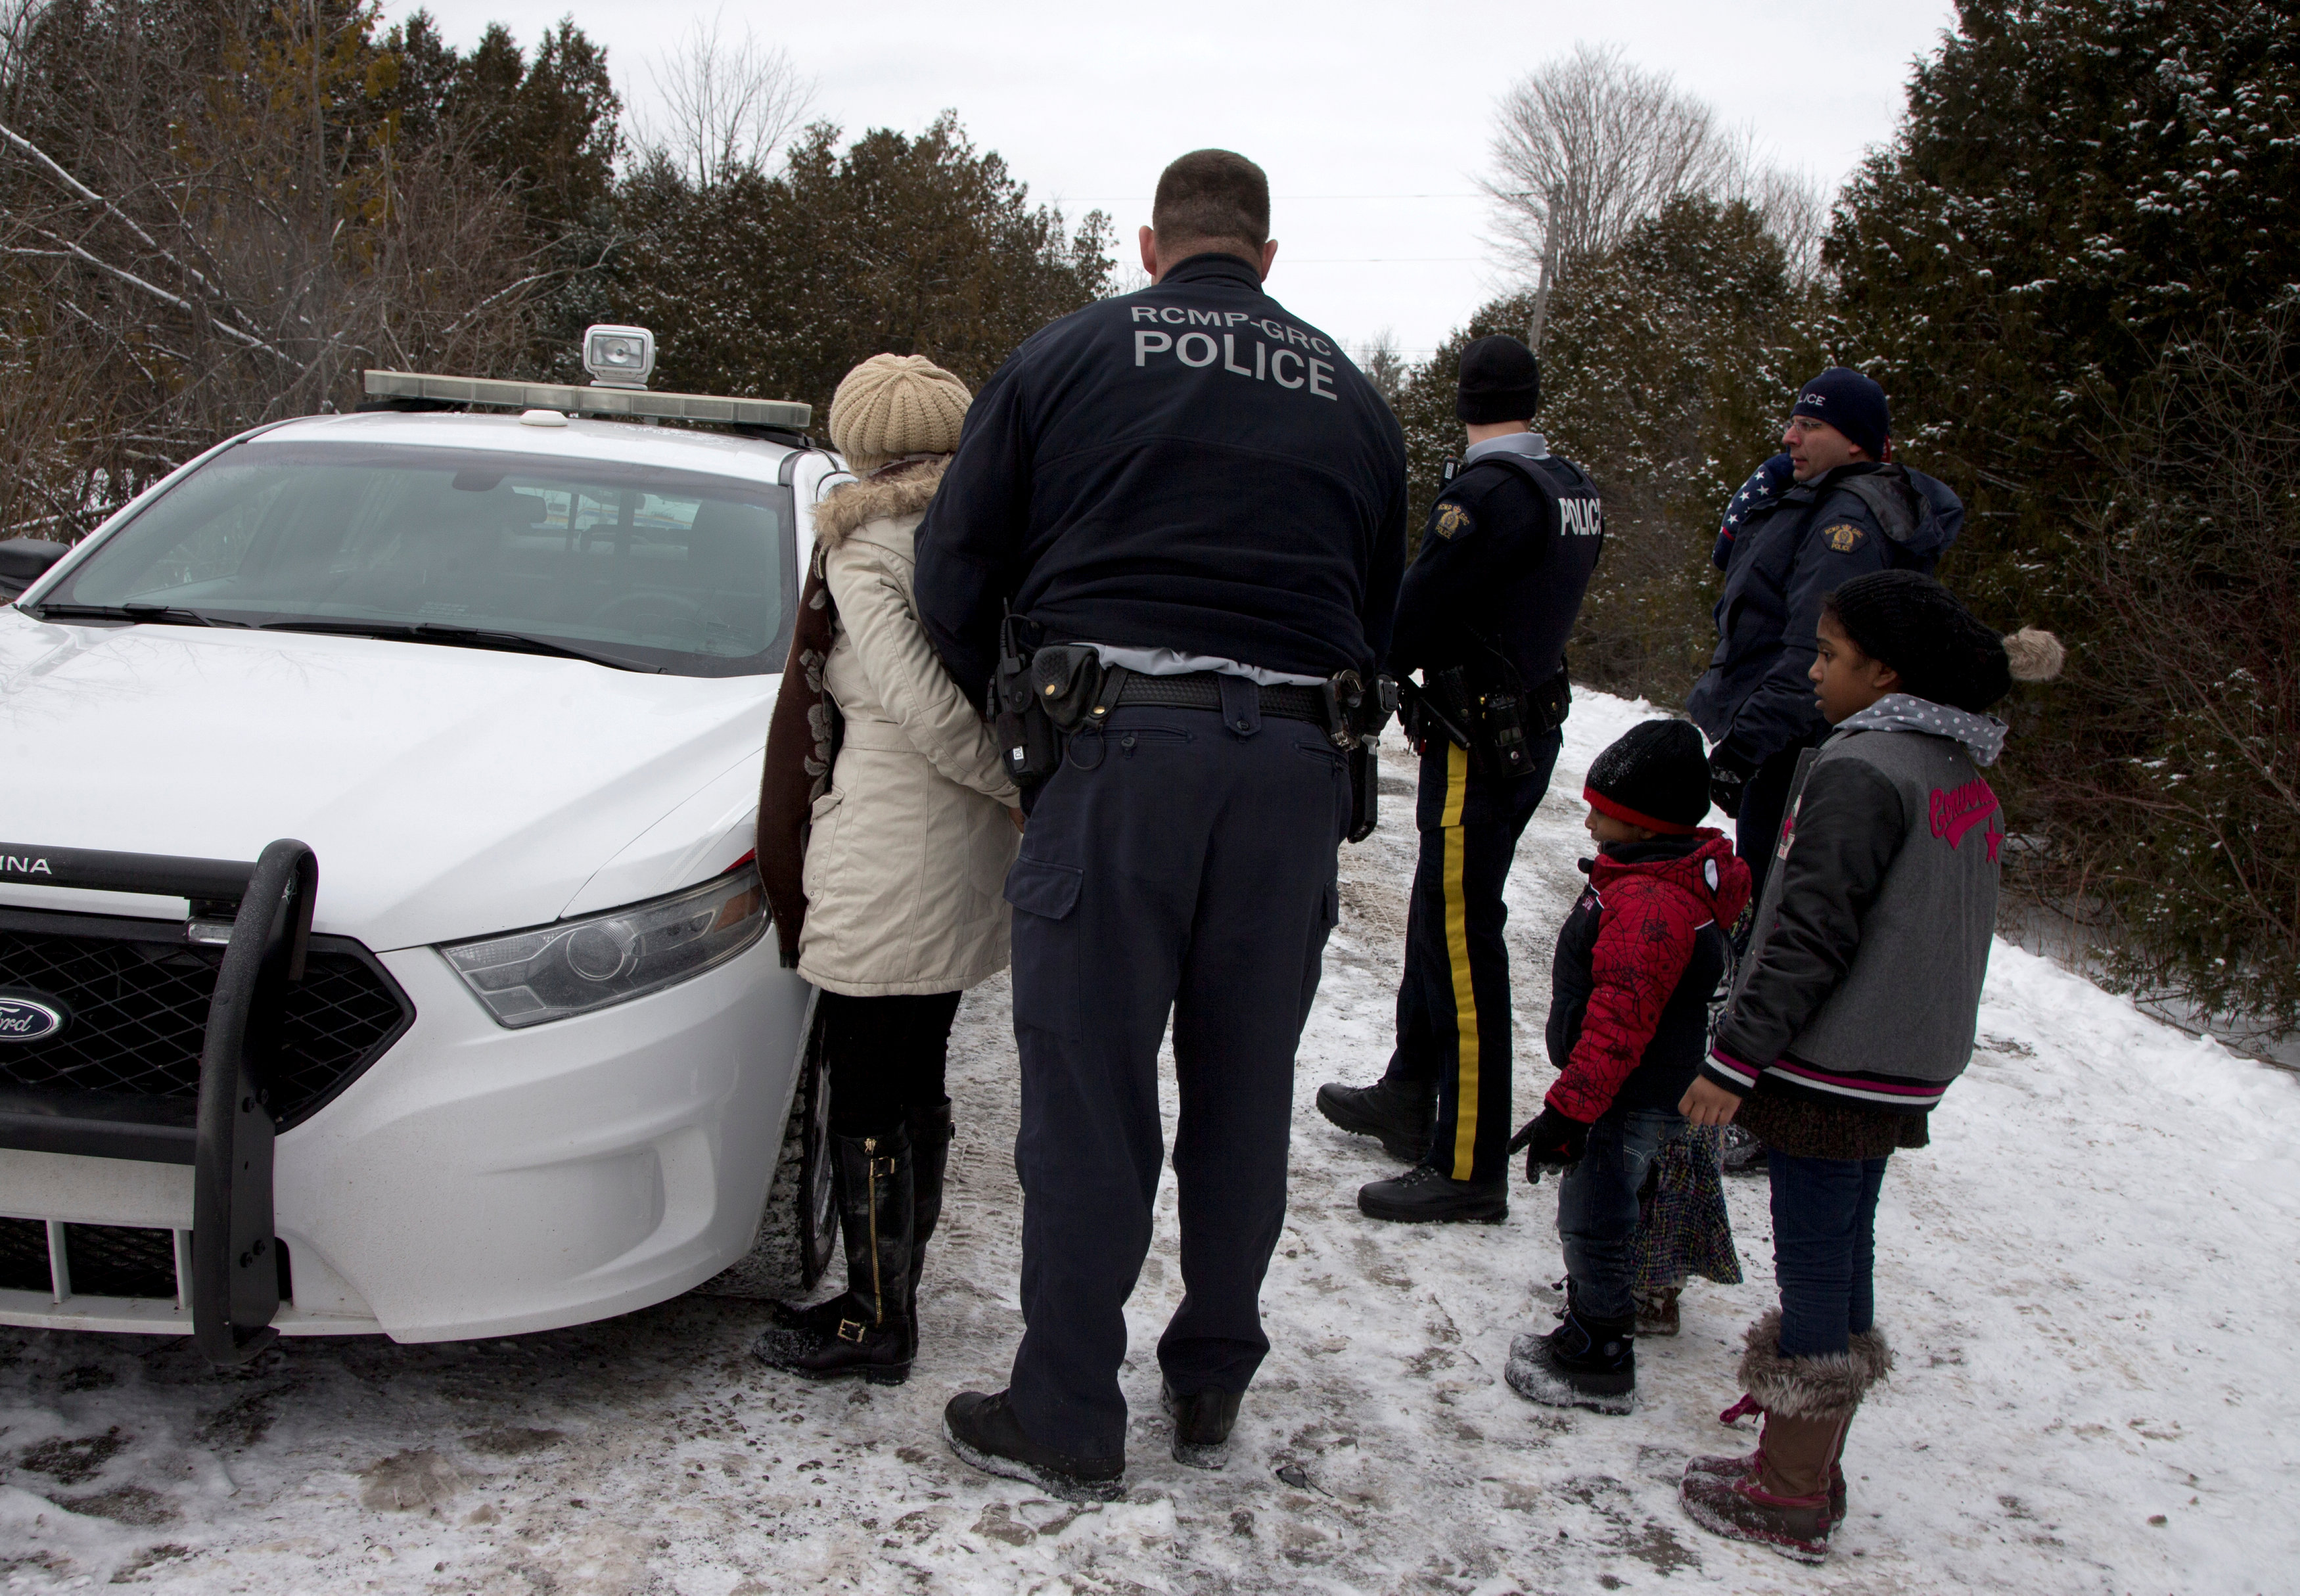 FILE PHOTO: A woman who told police that she and her family were from Sudan is taken into custody by Royal Canadian Mounted Police (RCMP) officers after arriving by taxi and walking across the U.S.-Canada border into Hemmingford, Quebec, Canada on February 12, 2017. REUTERS/Christinne Muschi/File Photo